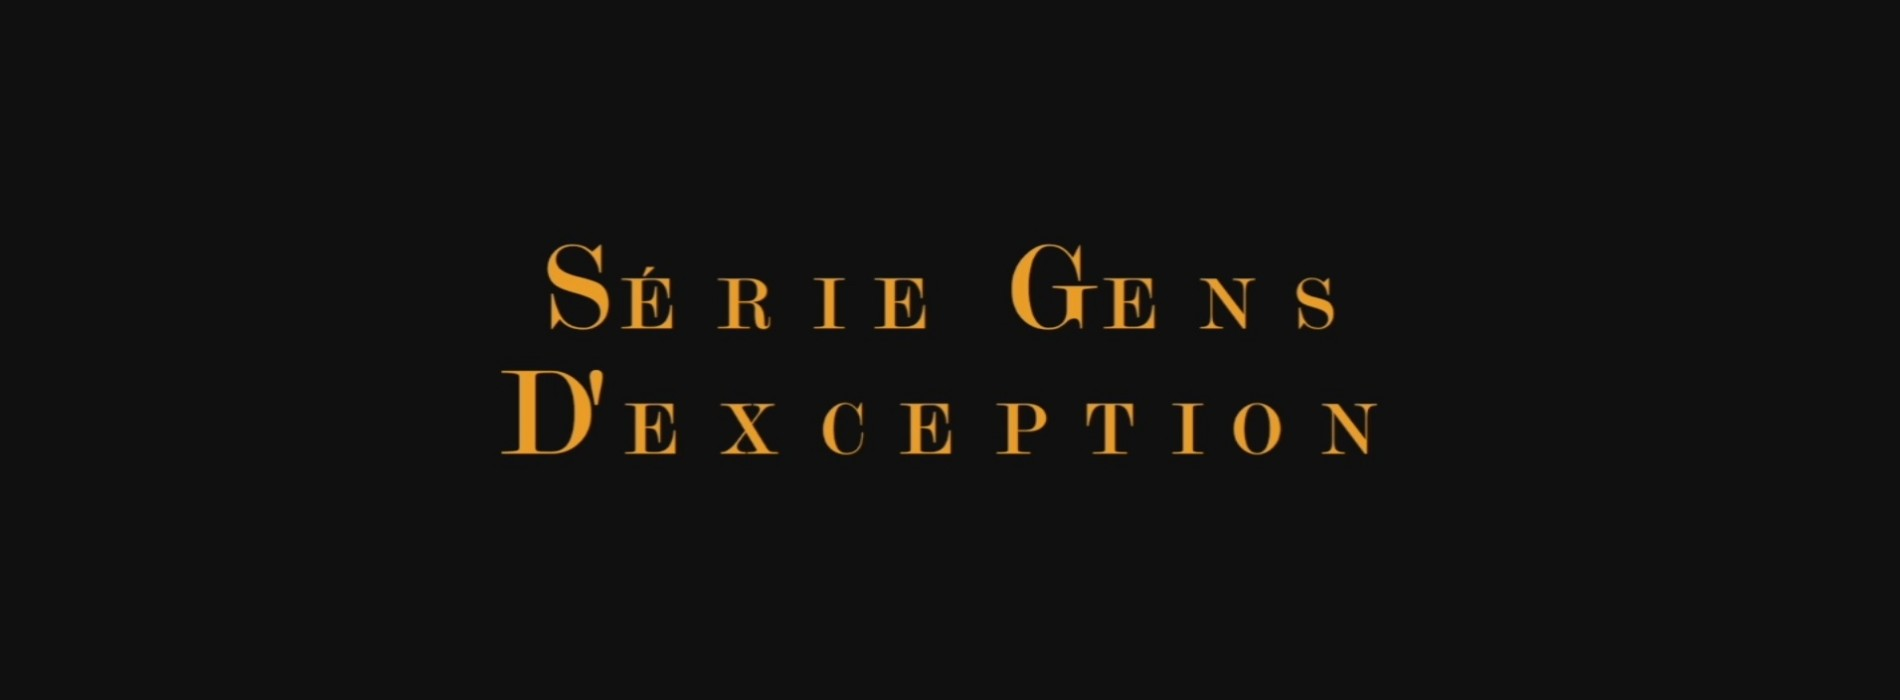 serie-gens-dexceptions